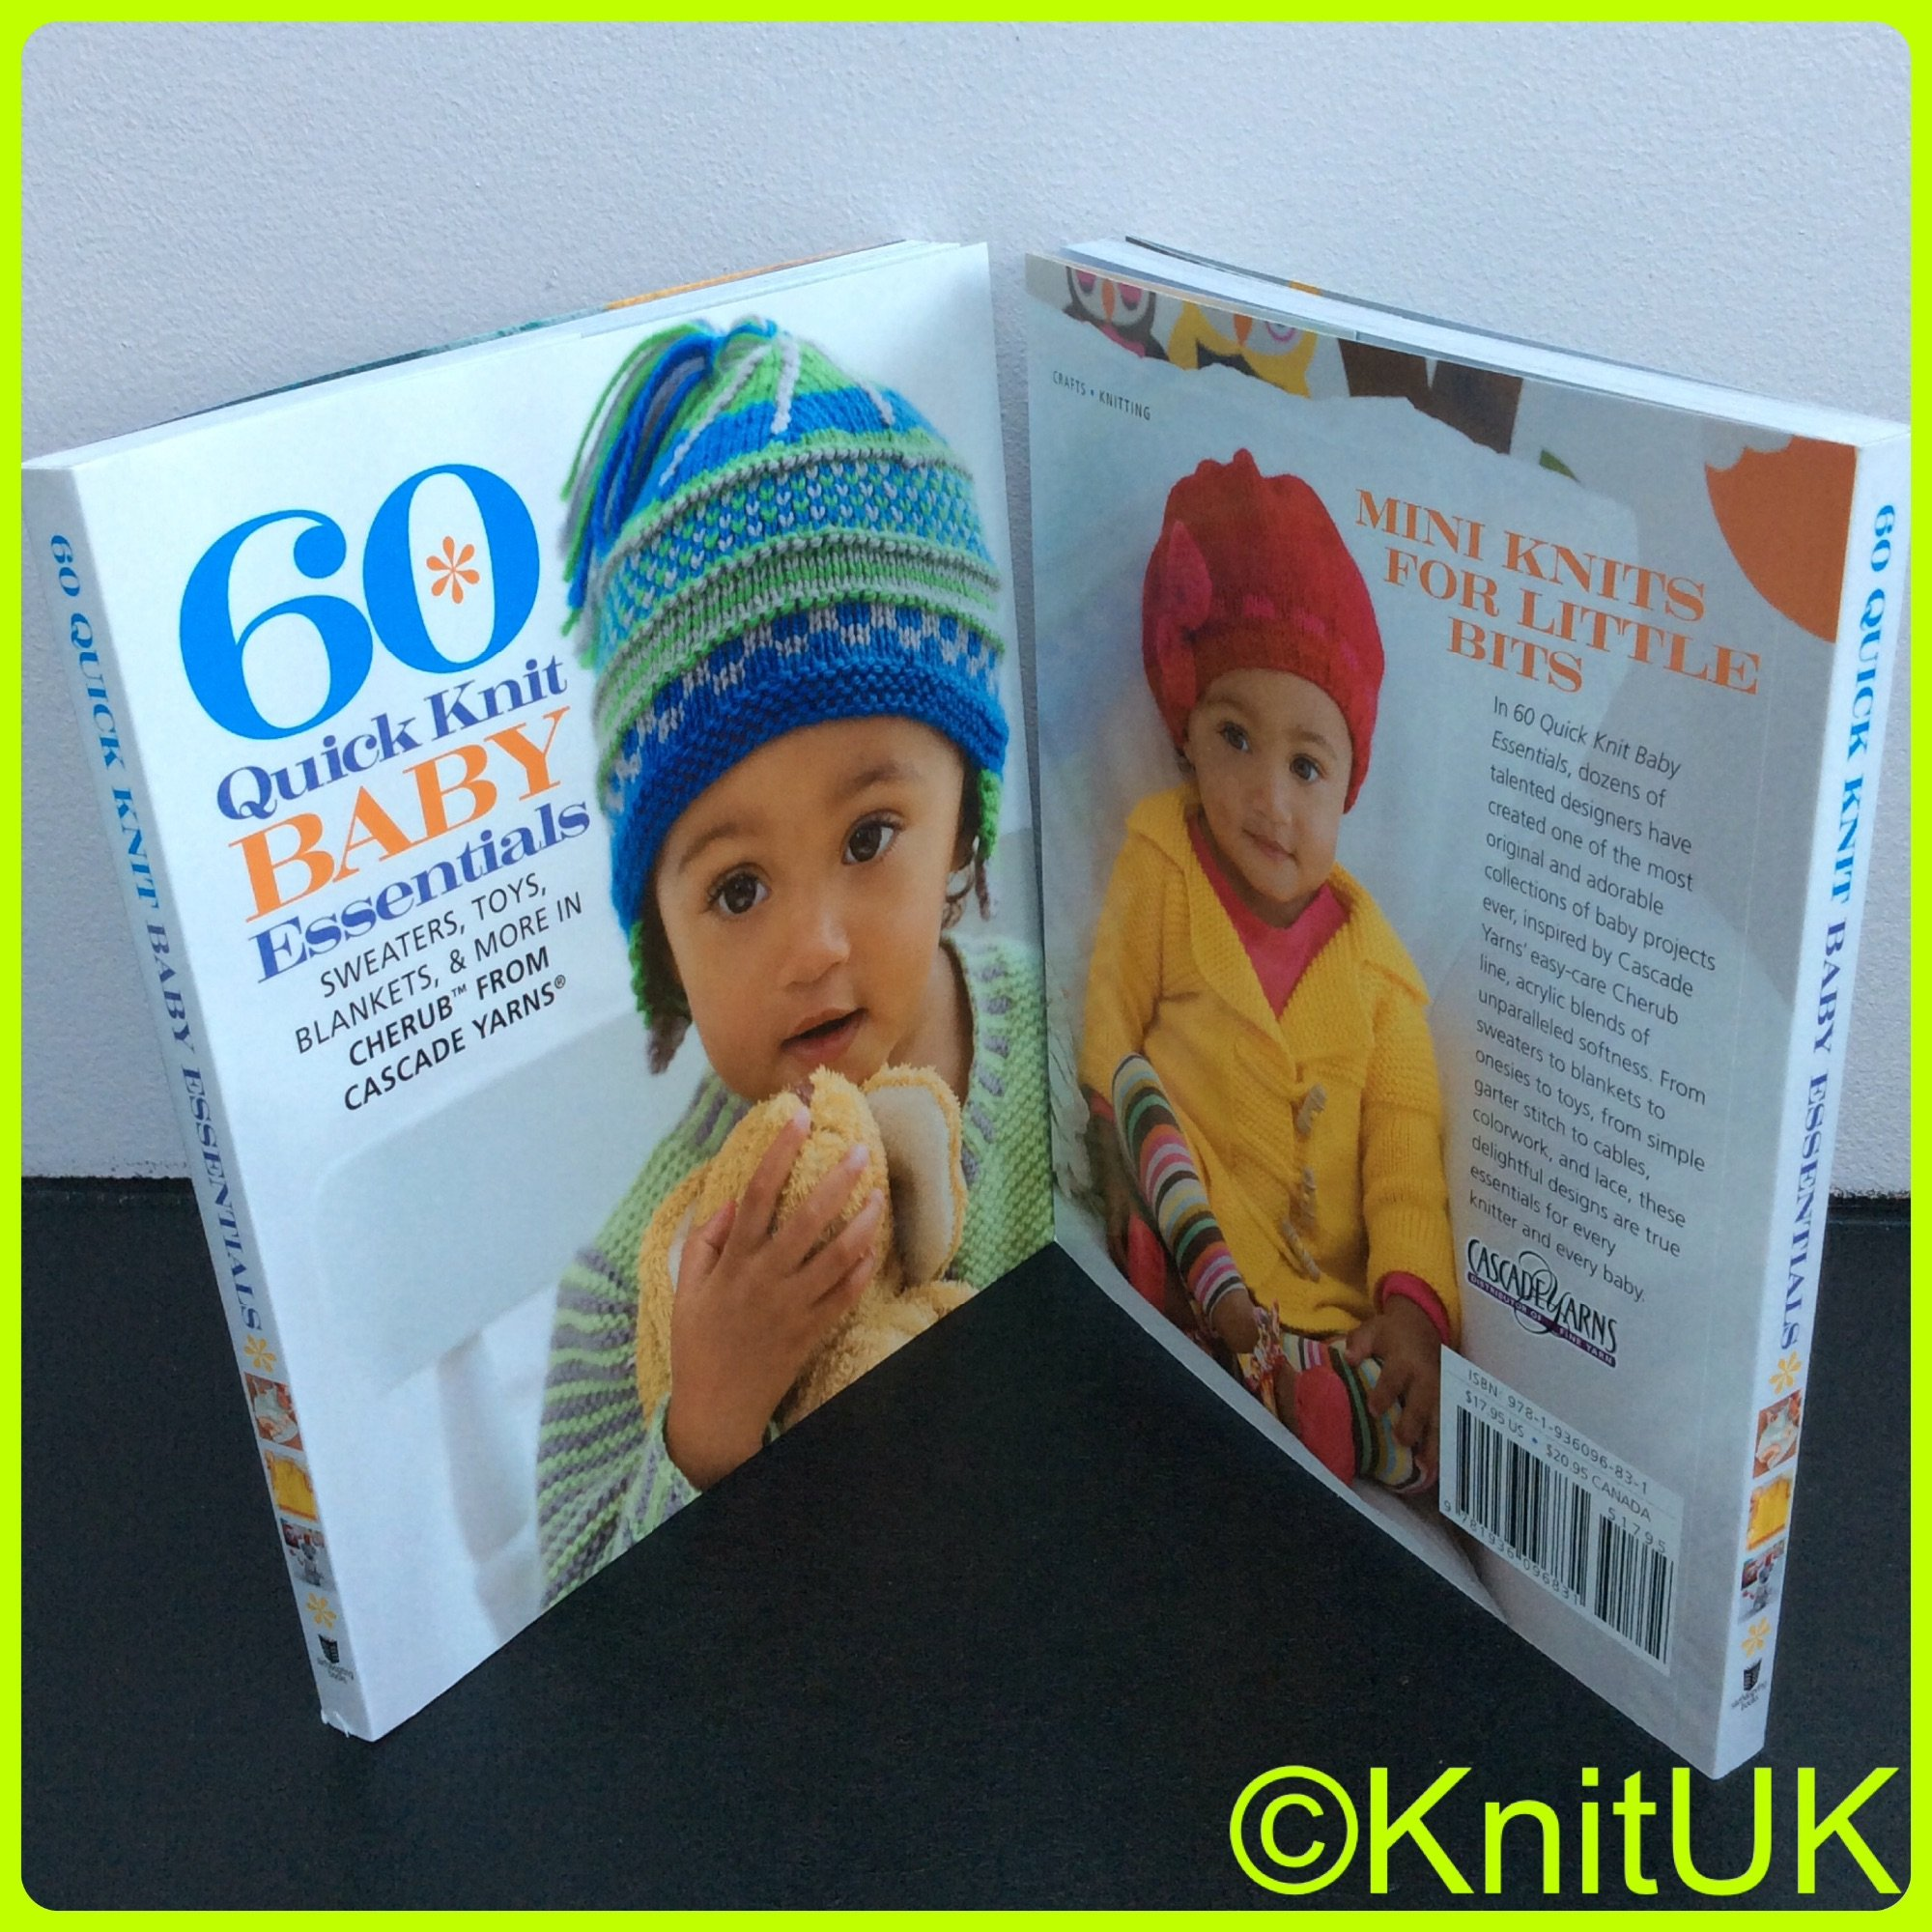 Knitting Essentials For Baby : Quick knit baby essentials sixth spring books knituk